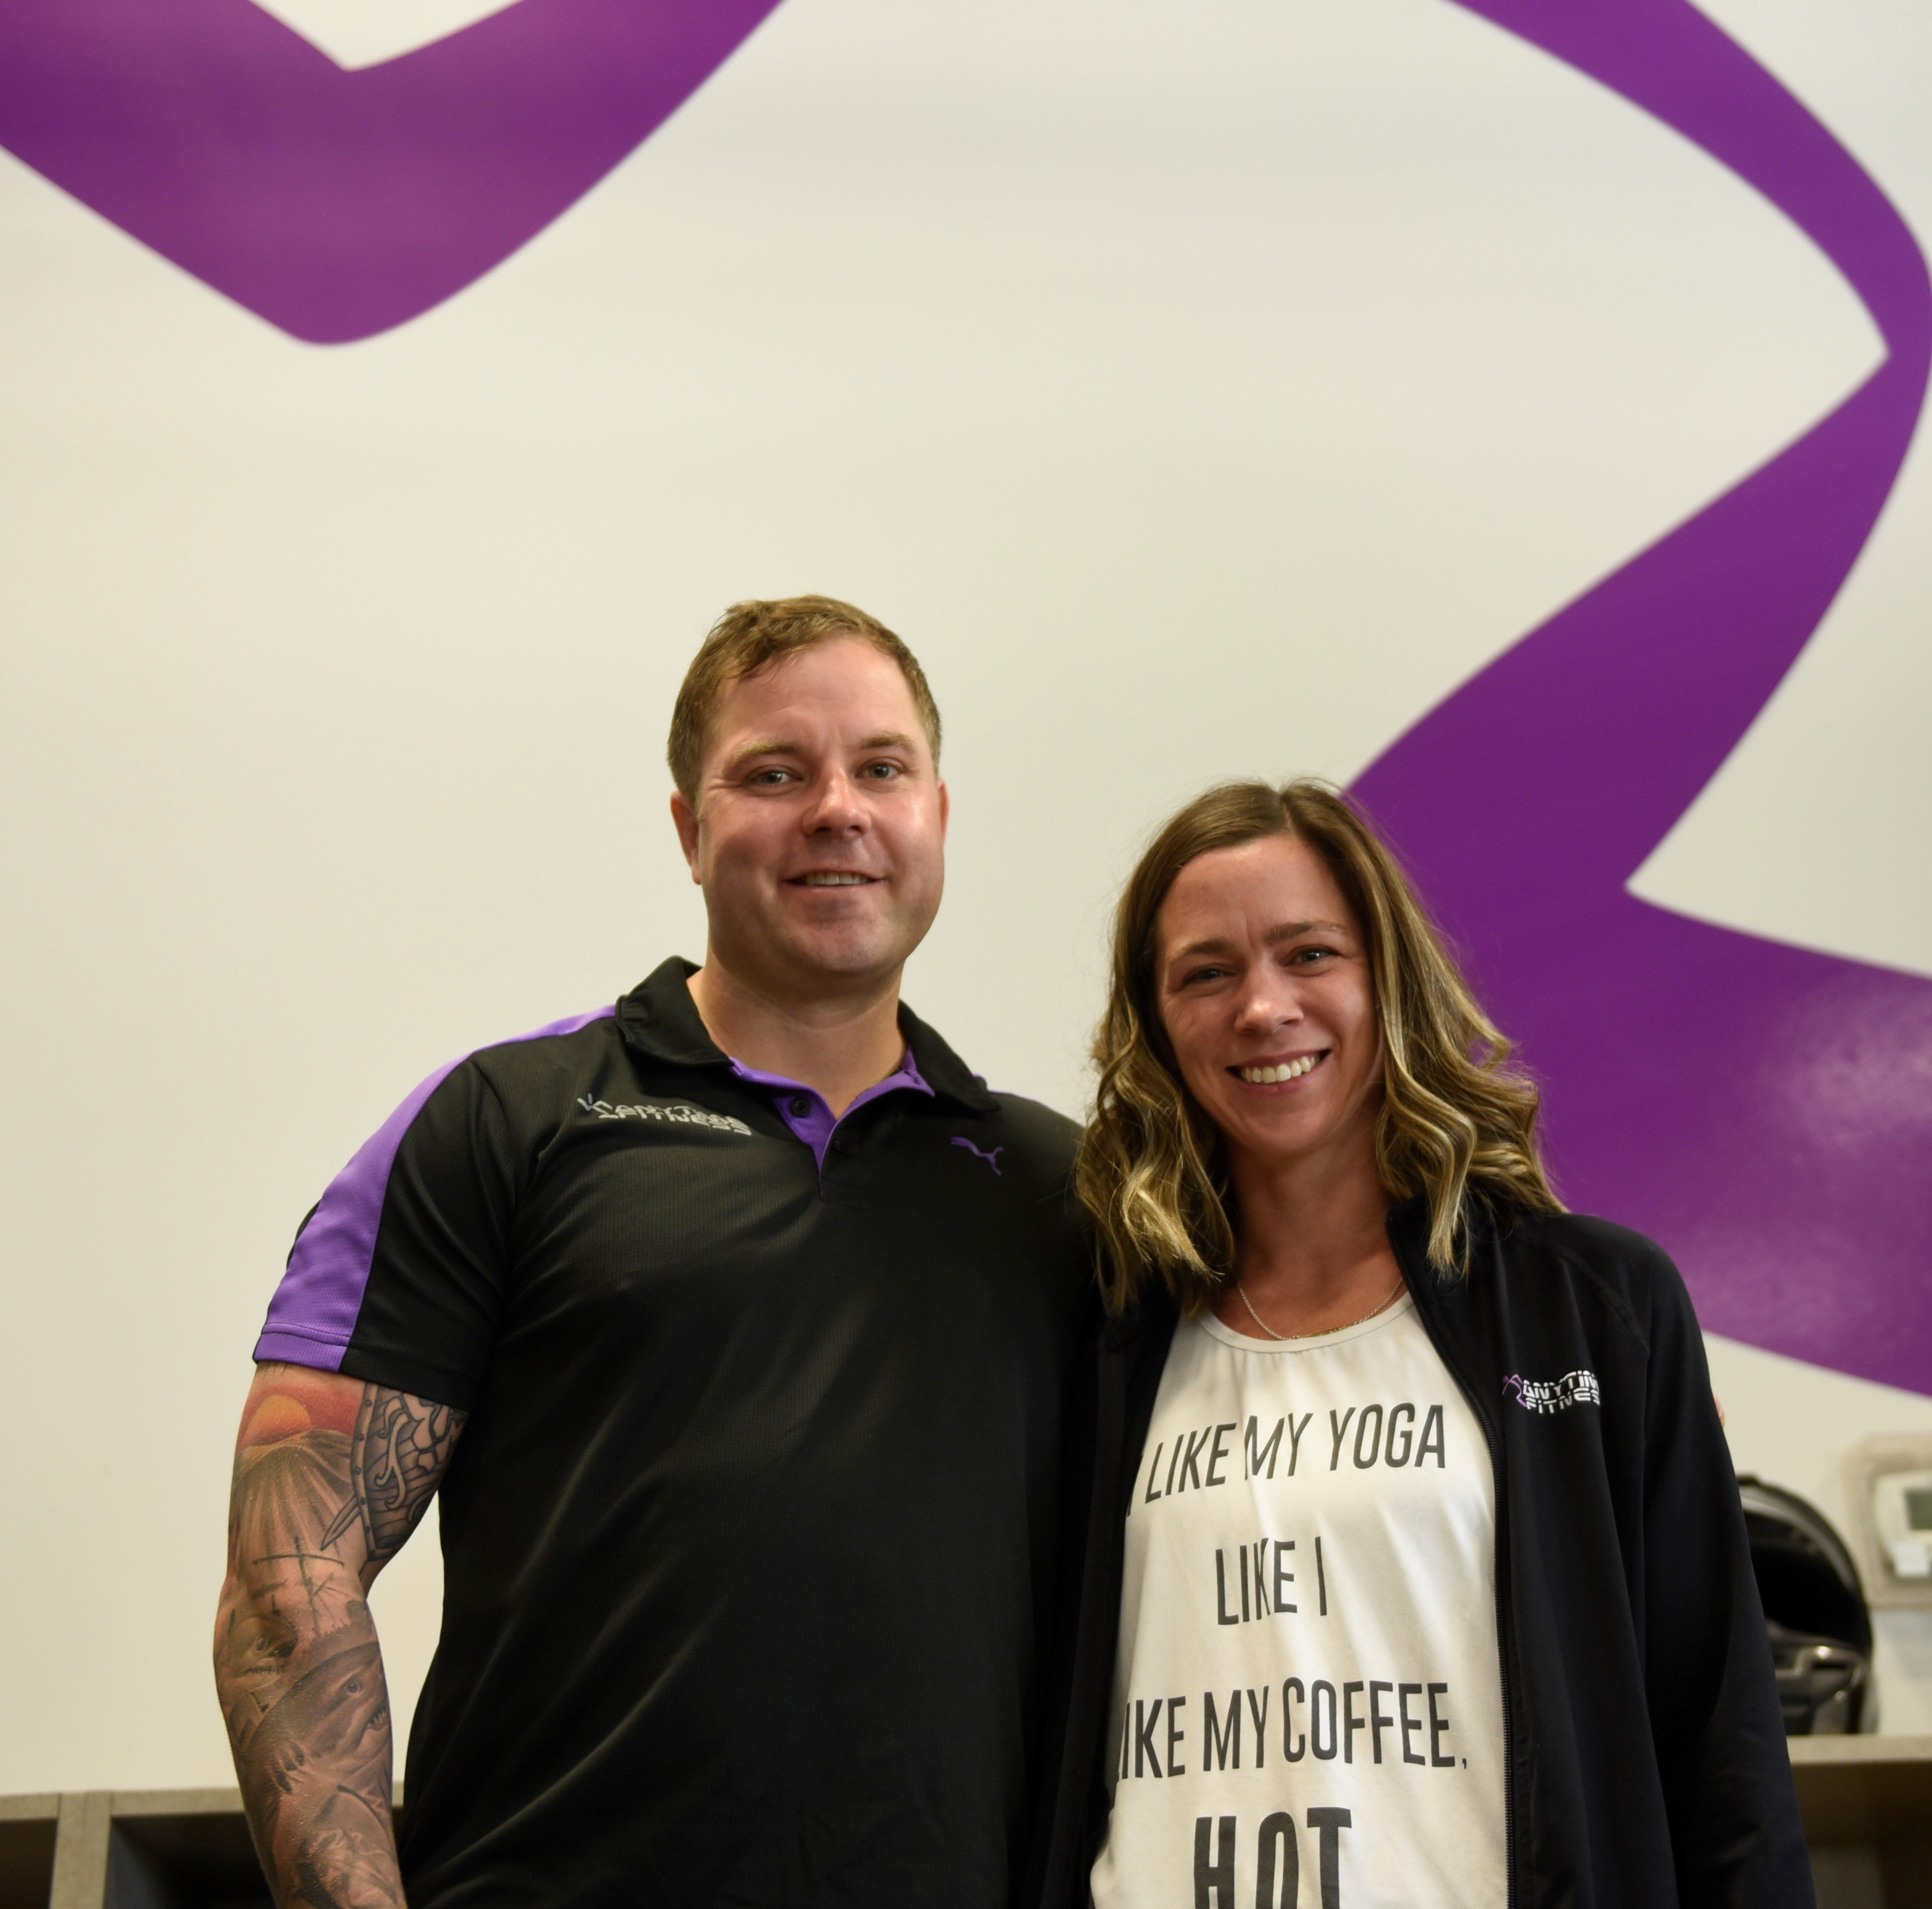 Anytime Fitness, hot yoga coming to Sartell this summer